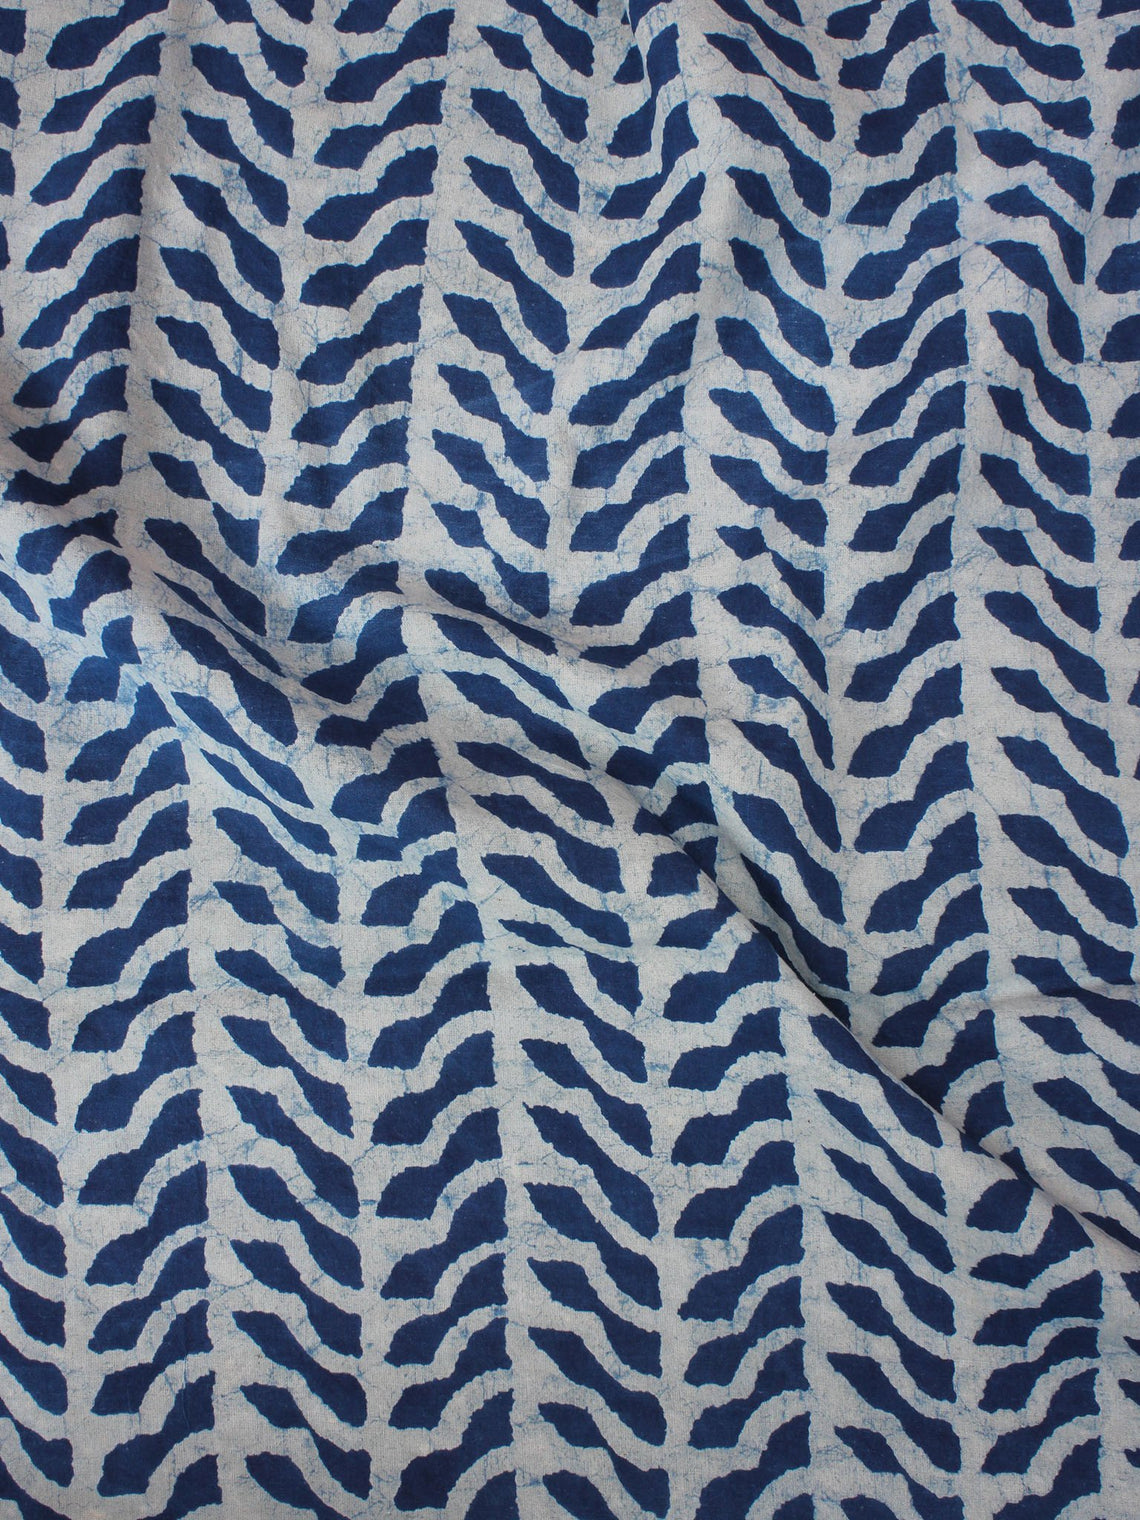 Indigo Ivory Natural Dyed Hand Block Printed Cotton Fabric Per Meter - F0916001